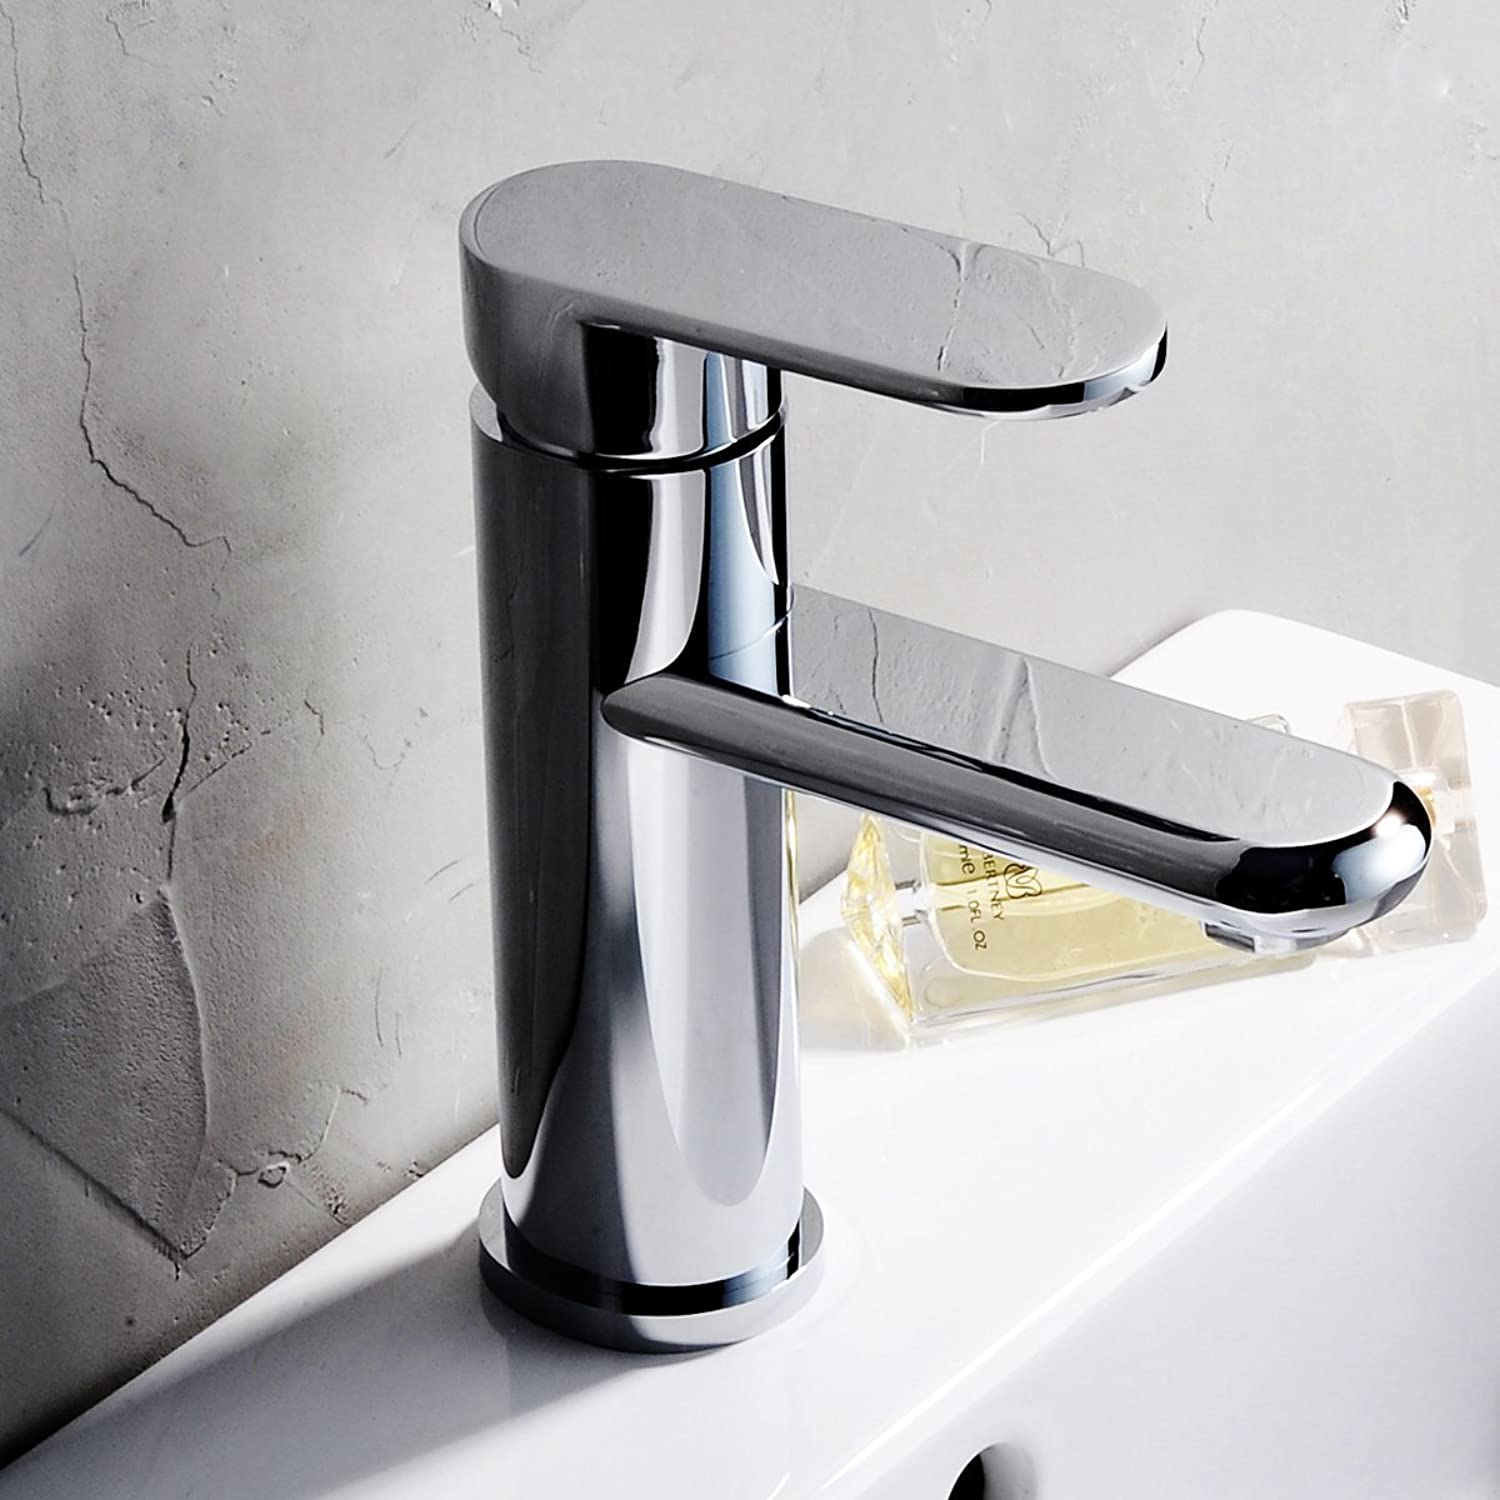 Square Basin Faucet Hot and Cold Copper Sitting Washbasin Table Basin Single Single Hole Faucet,Ah024- Oval